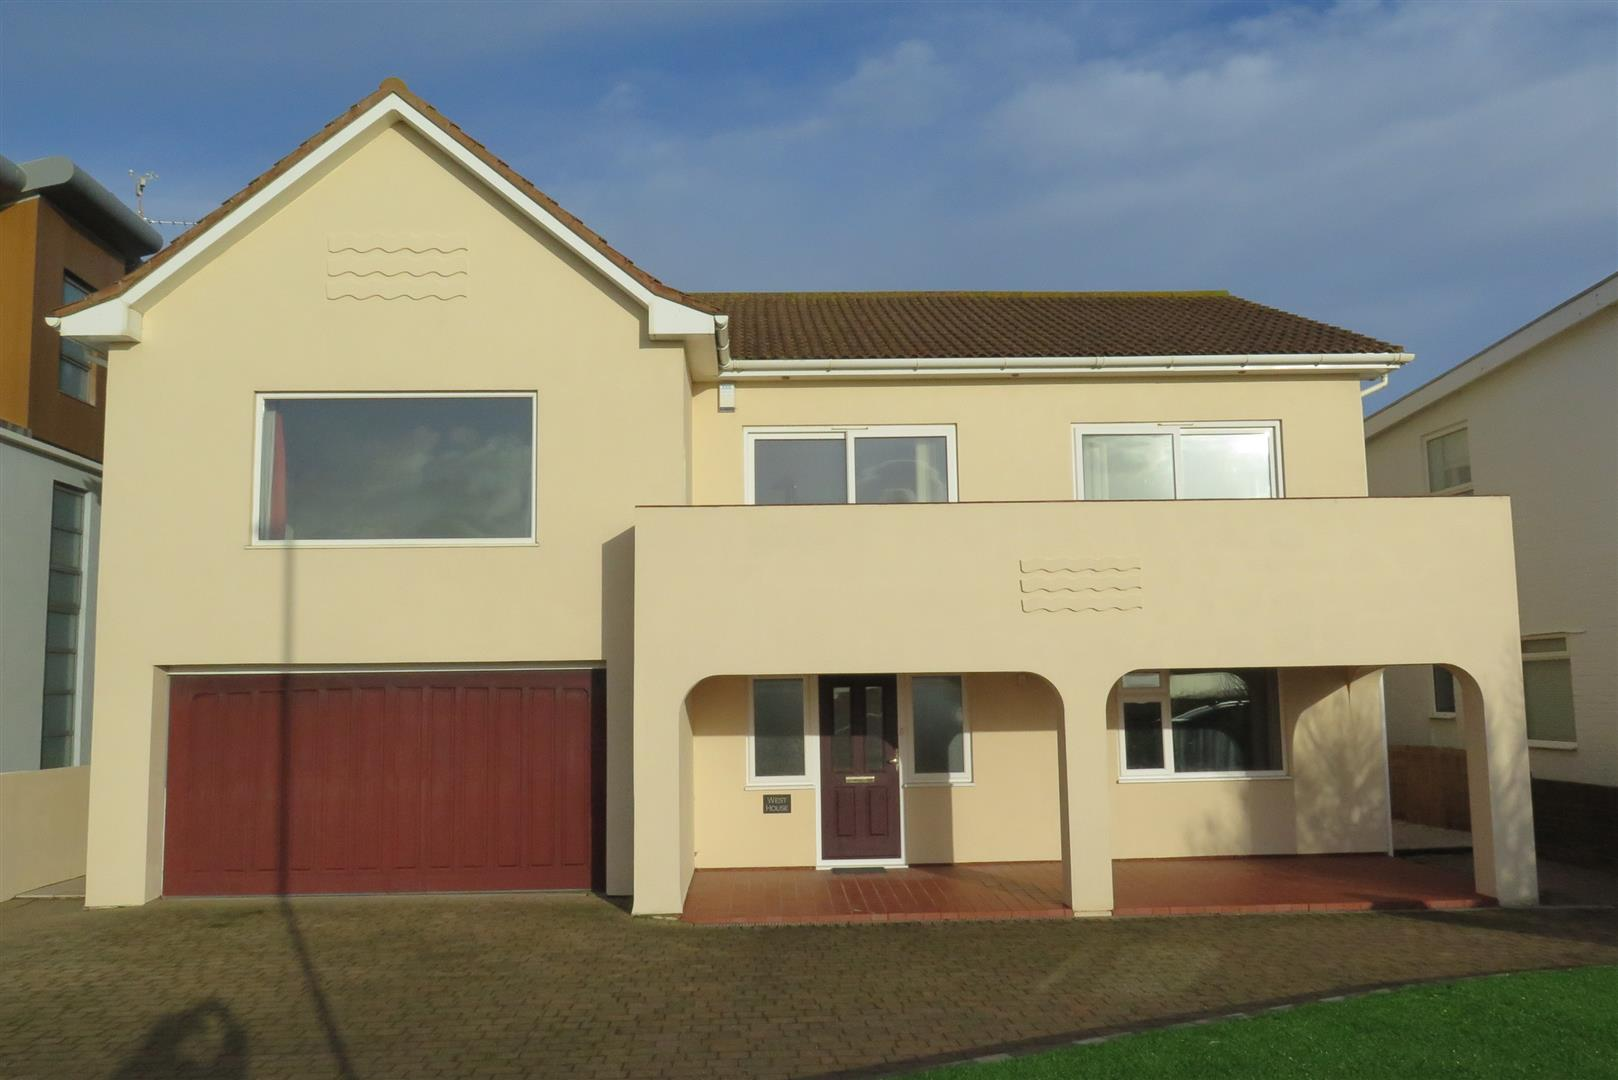 4 Bedrooms House for sale in West Beach, Shoreham-By-Sea